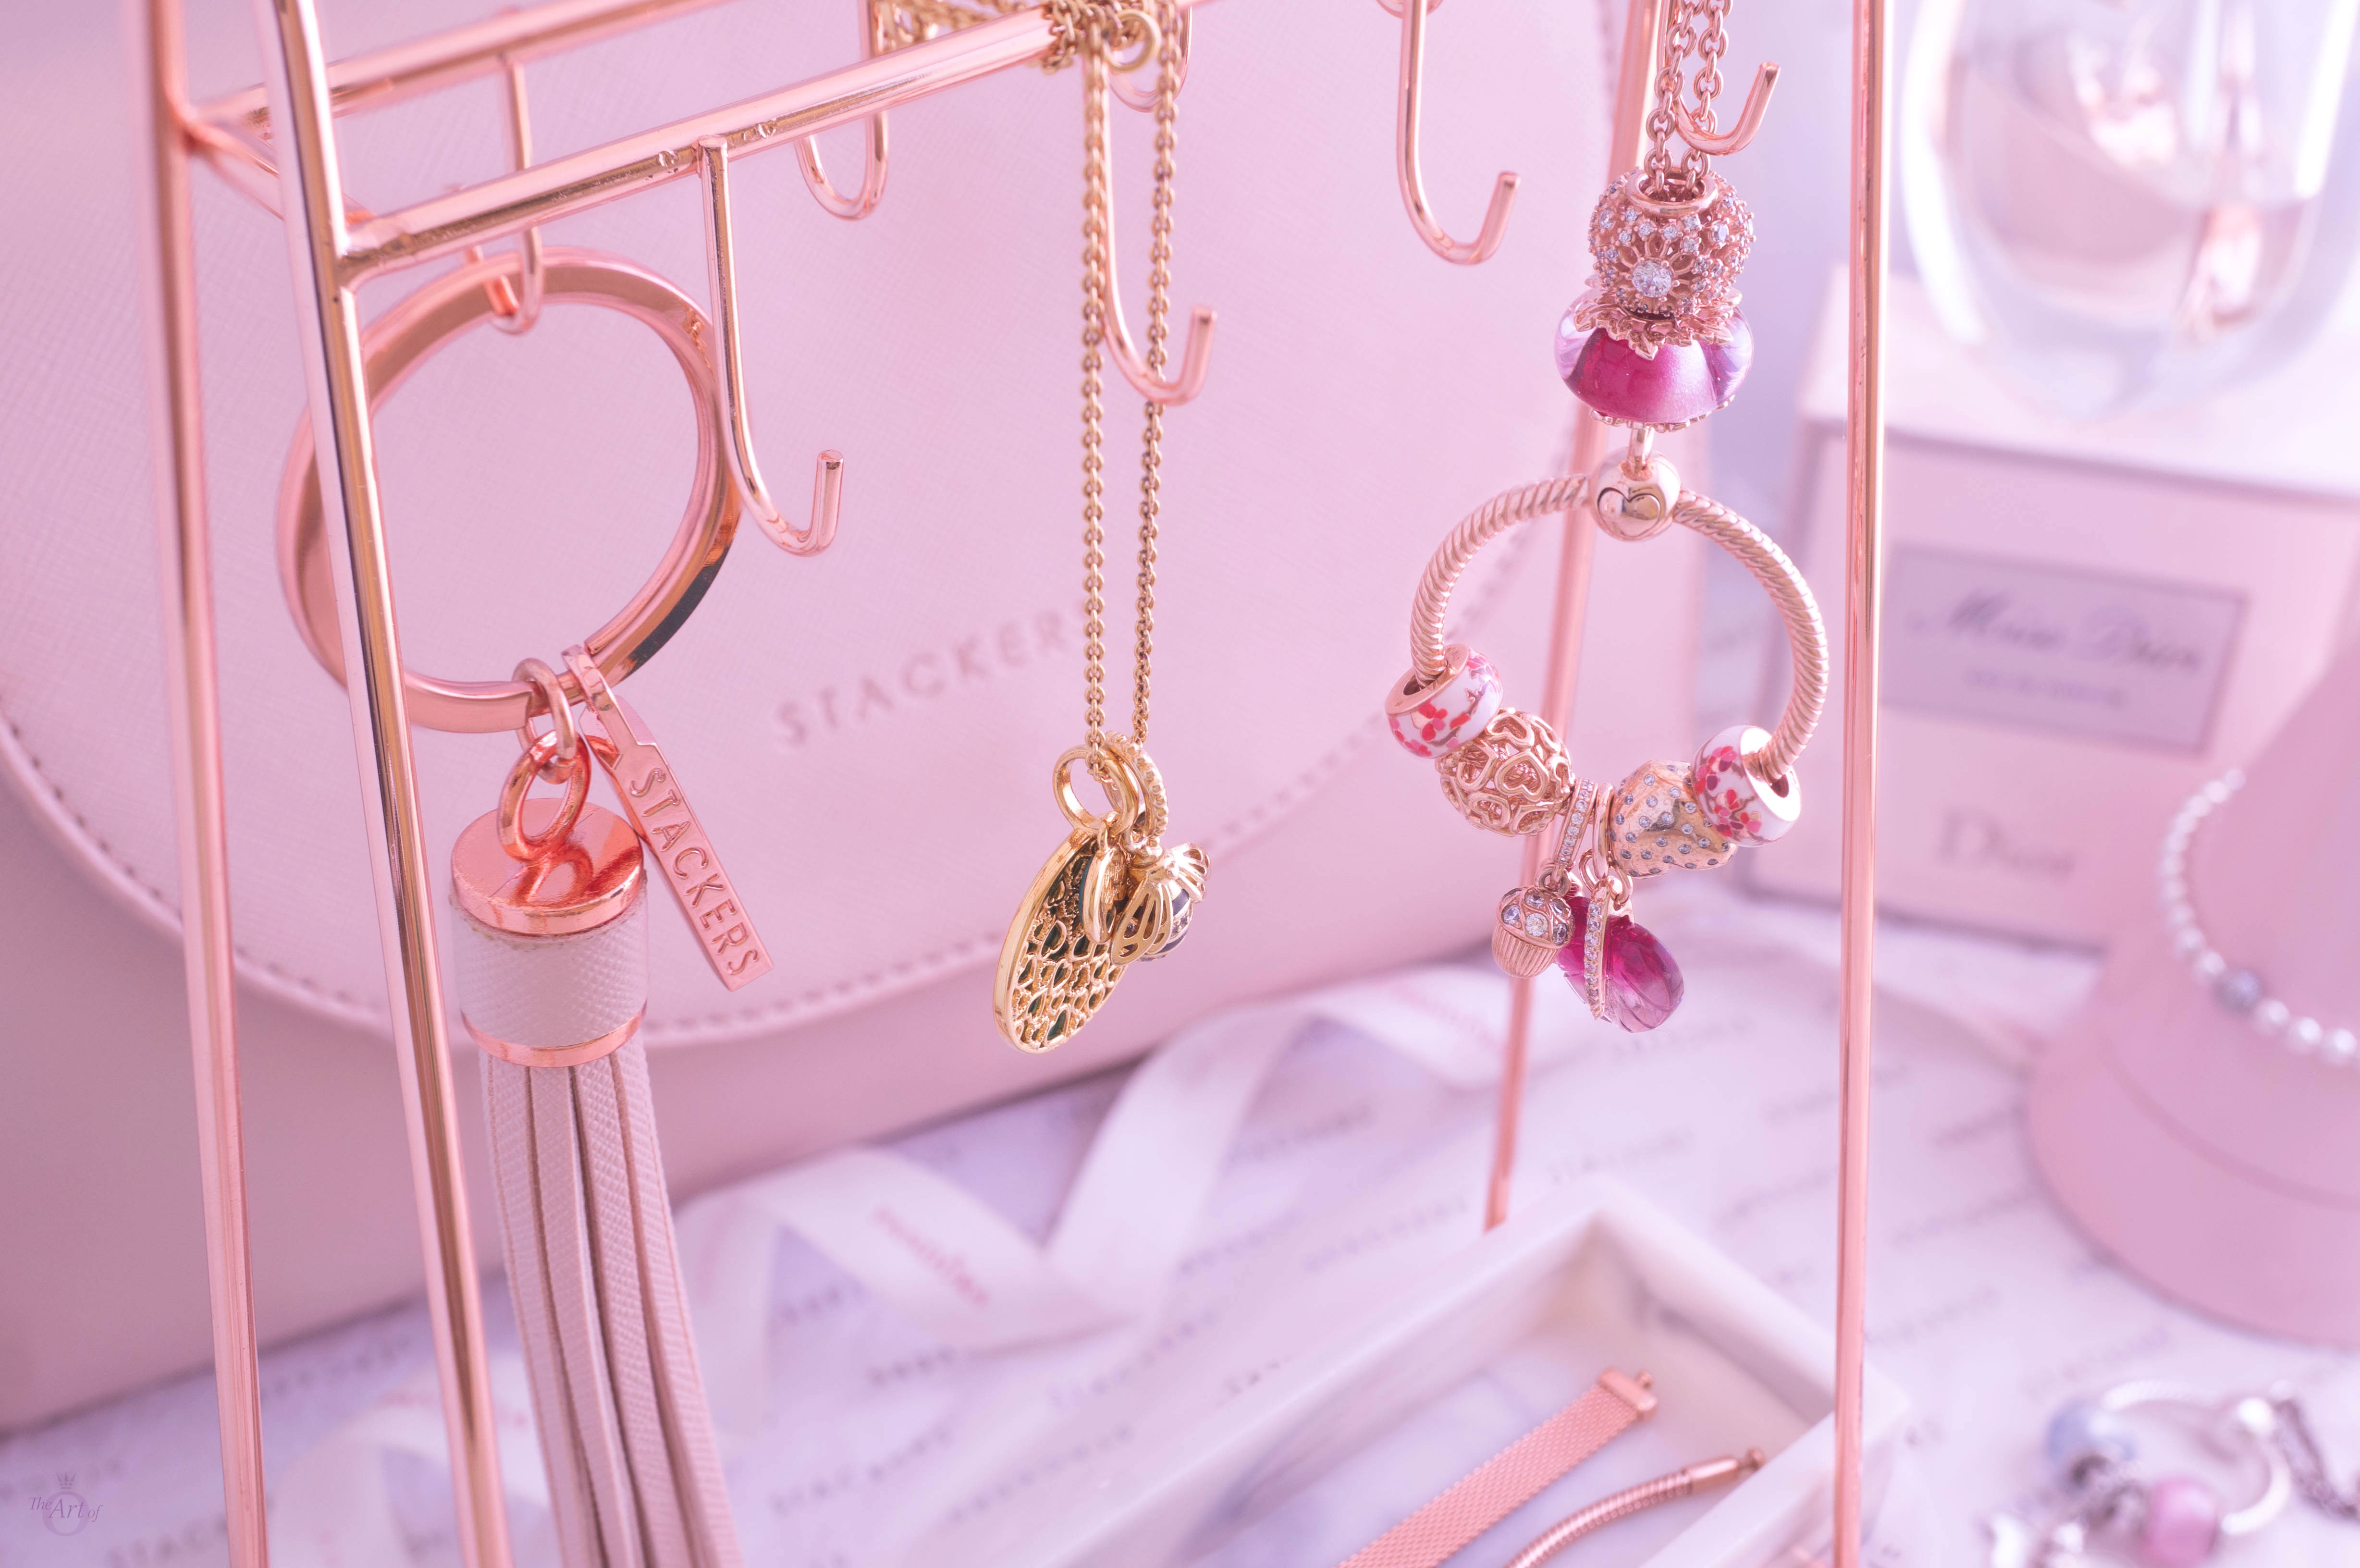 Stackers Rose Gold Marble Jewellery Stand The Art Of Pandora The 1 Pandora Blog